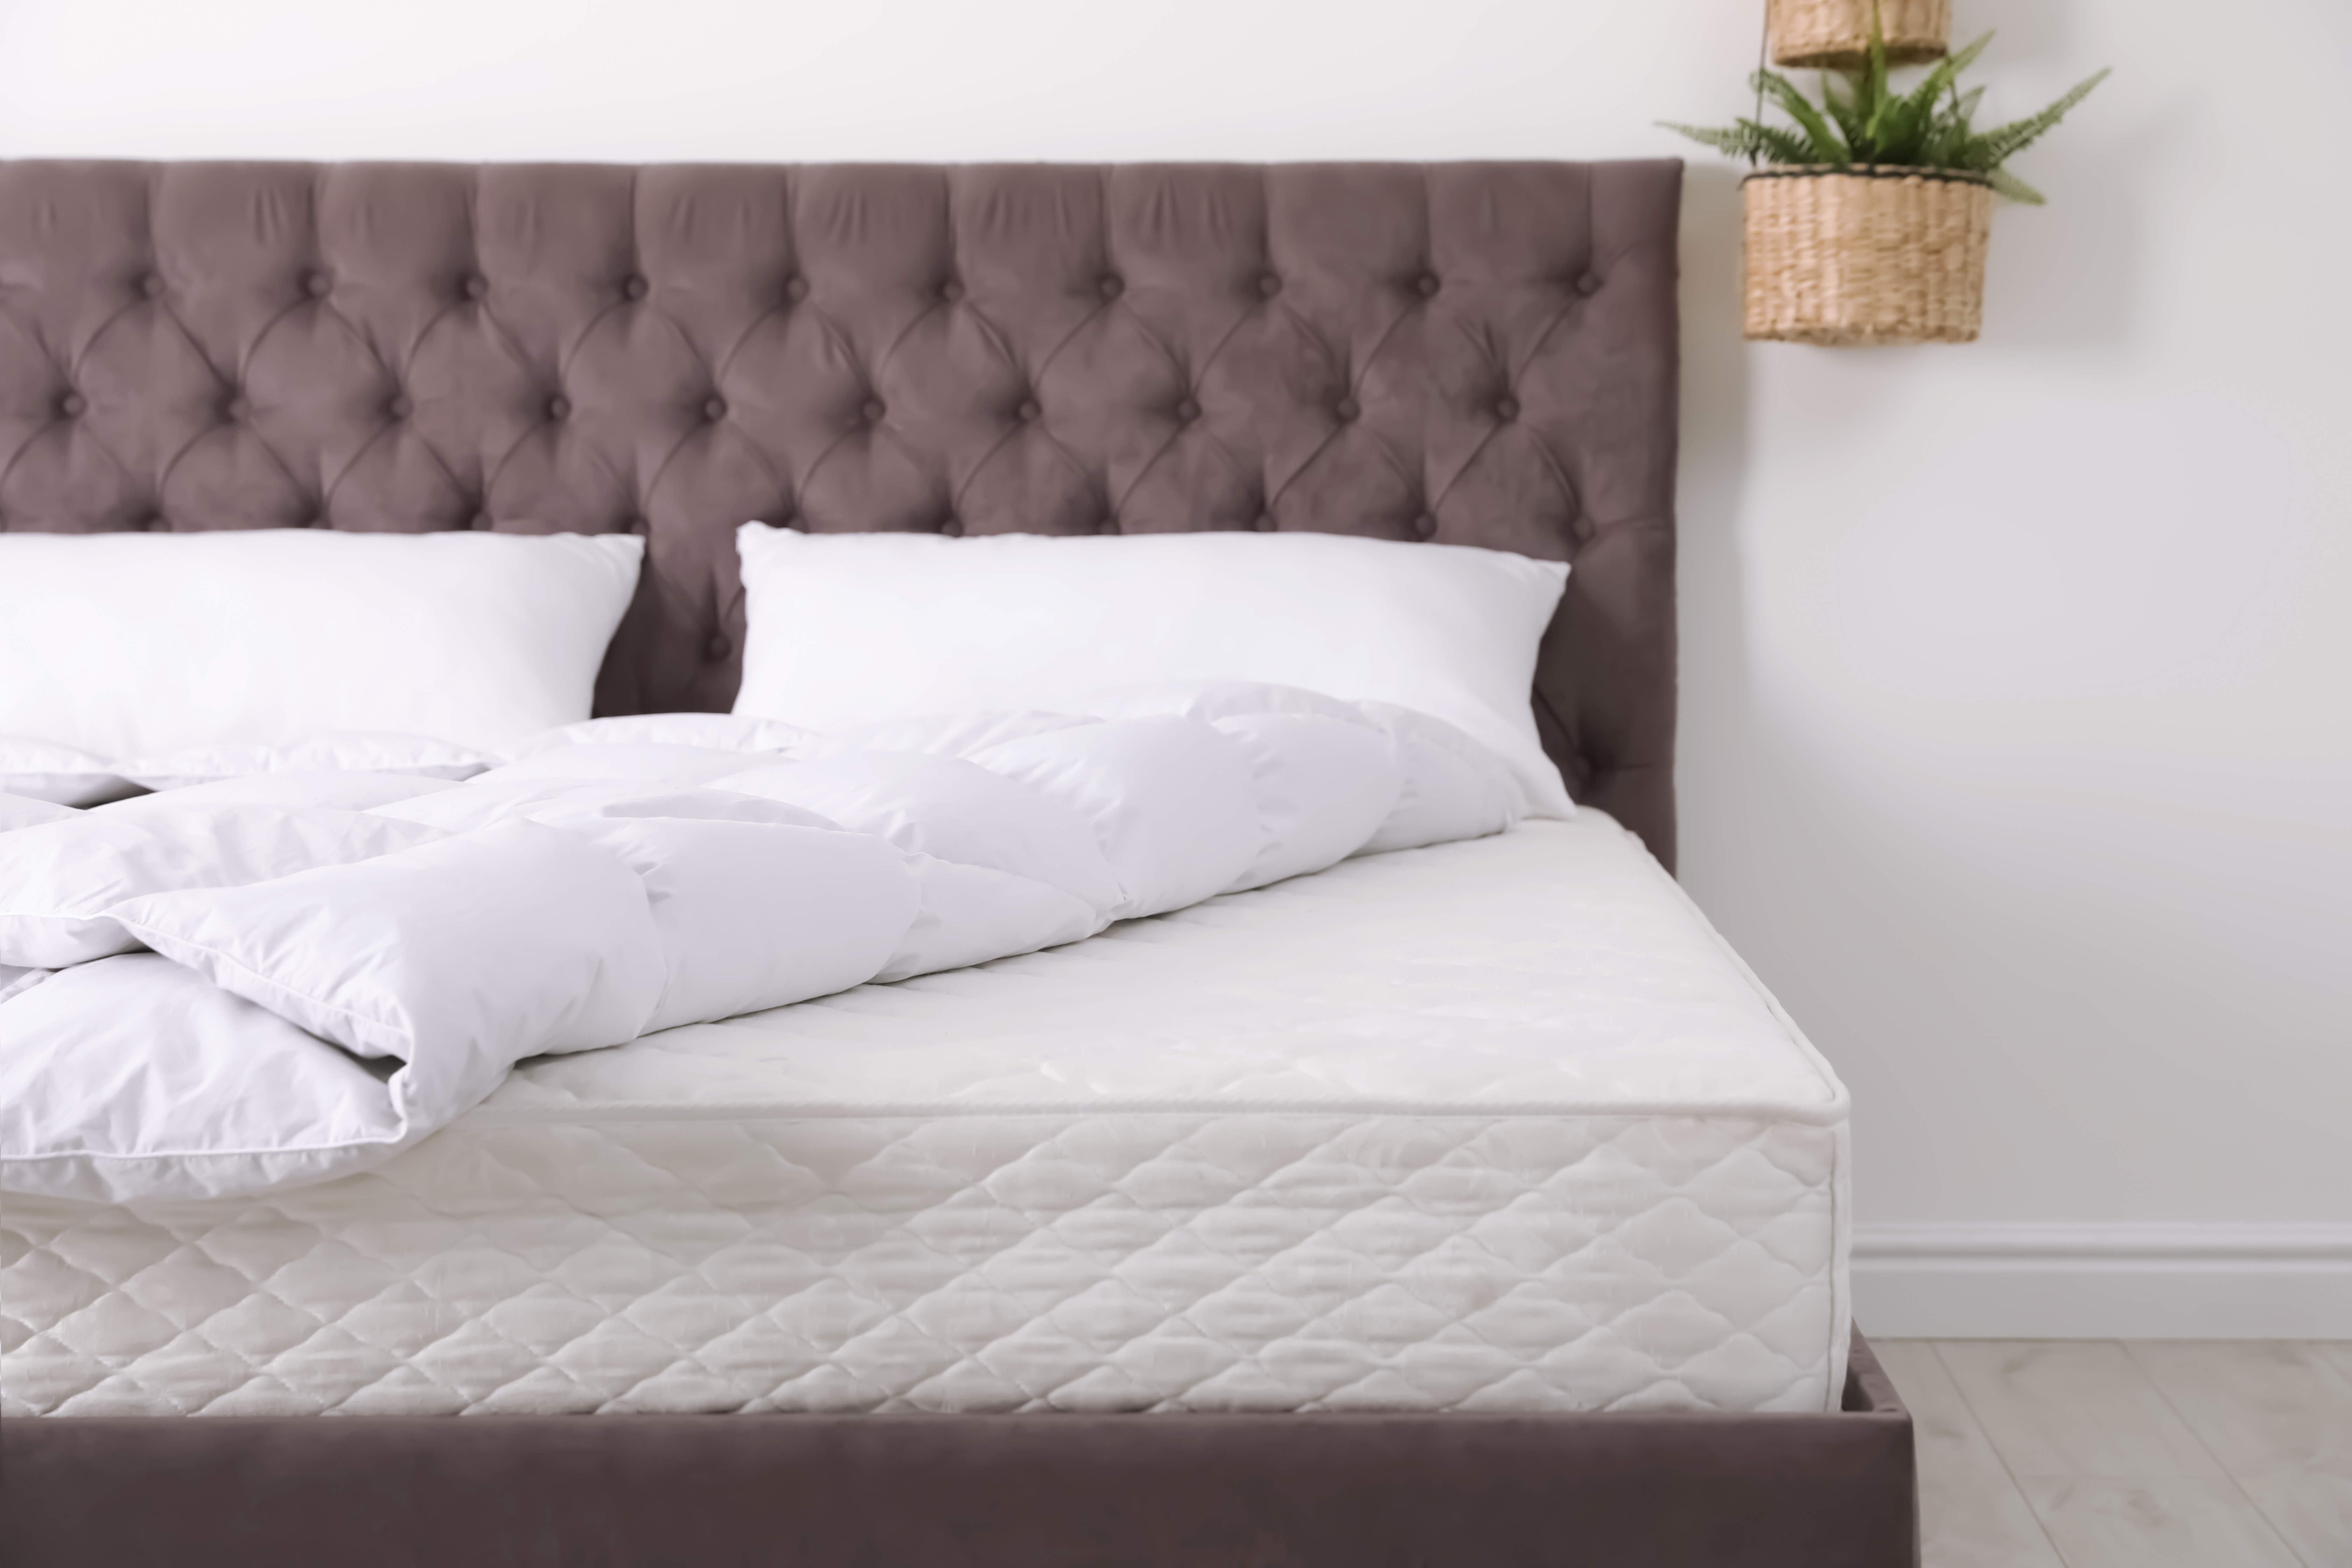 Finding the right mattress for you can change your quality of sleep for the better.